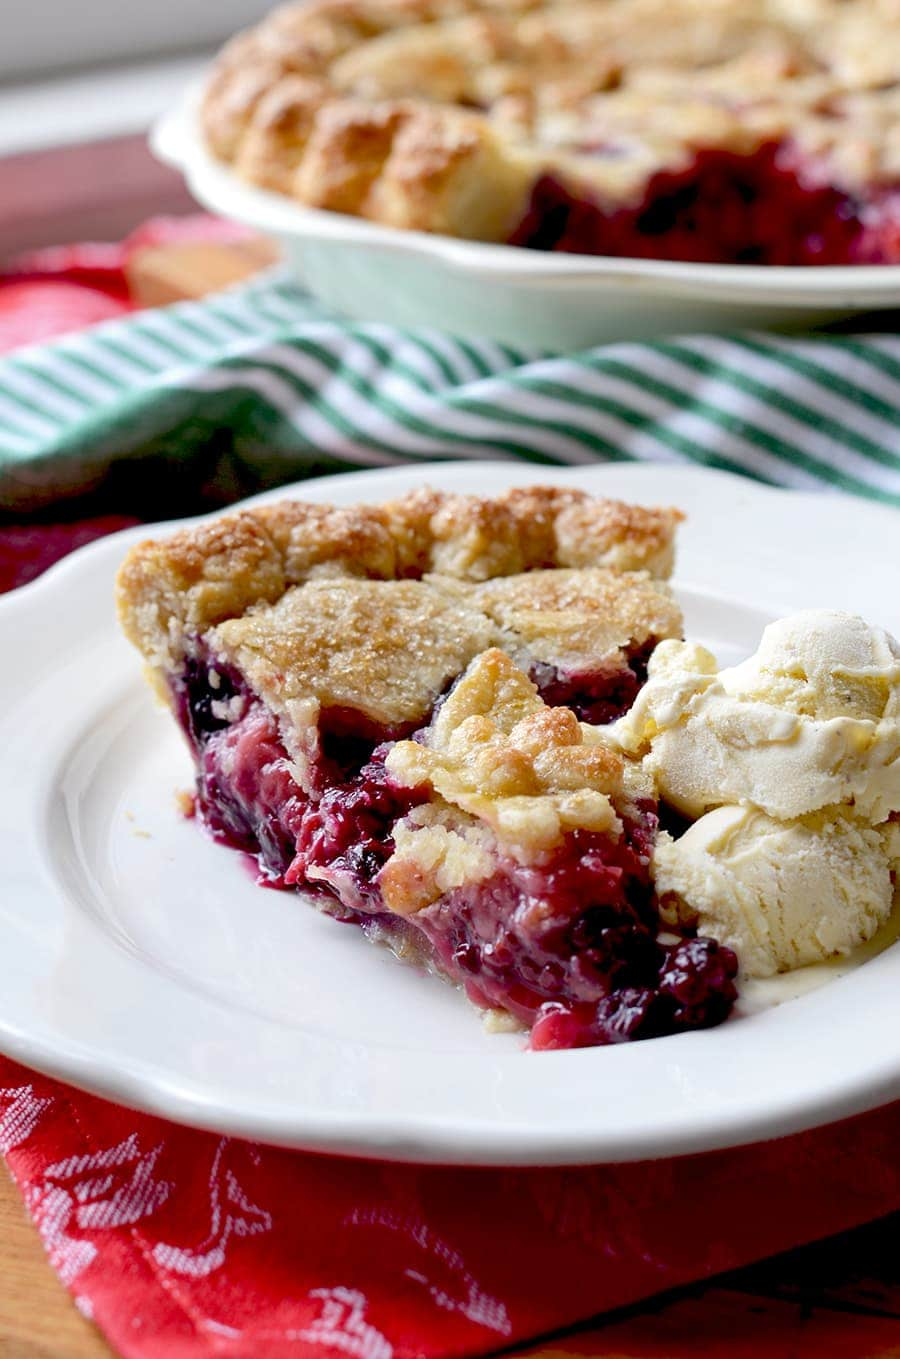 slice of mixed berry pie Web - Magnificent Mixed Berry Pie with Butter Almond Crust